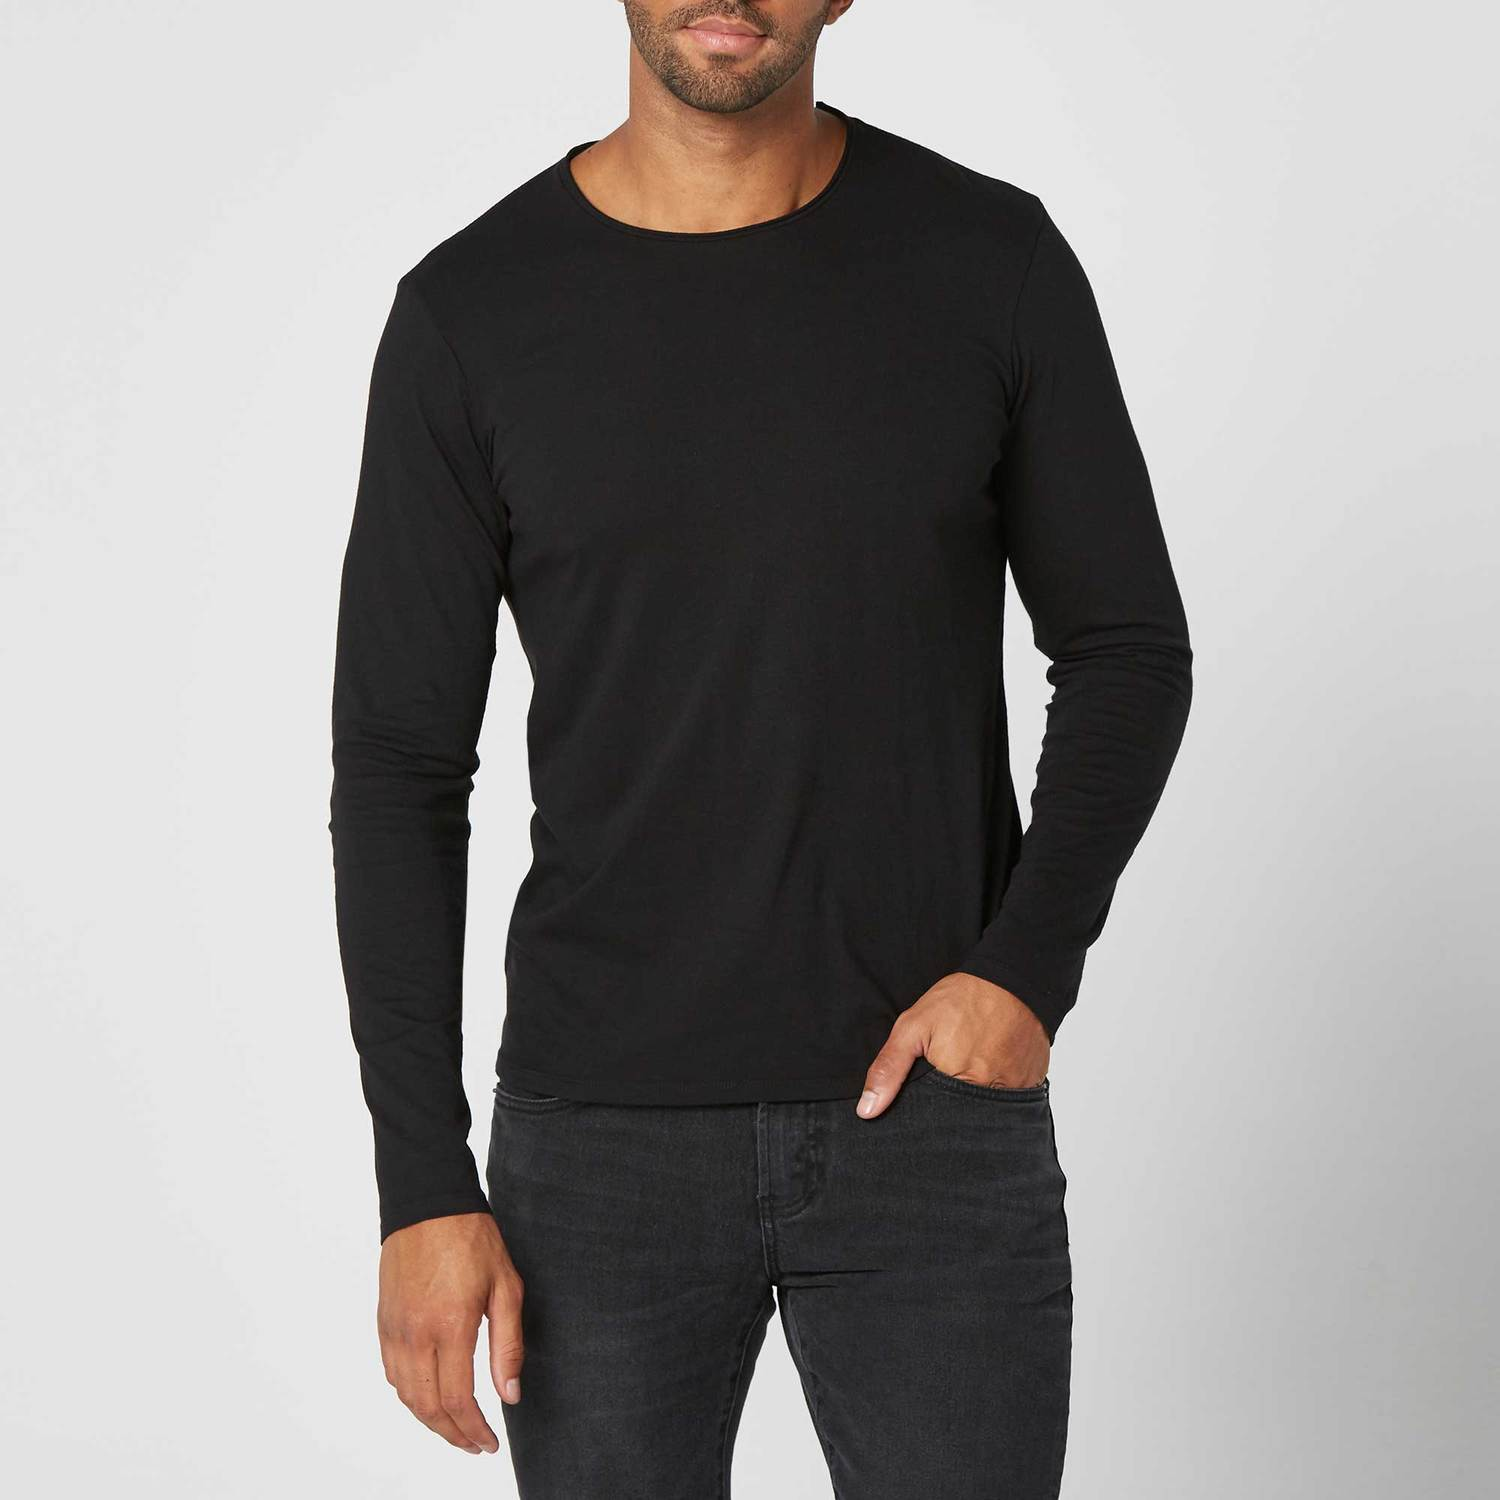 Mens Long Sleeve Modern Crew Neck Tee In Black  30  a05388403a0